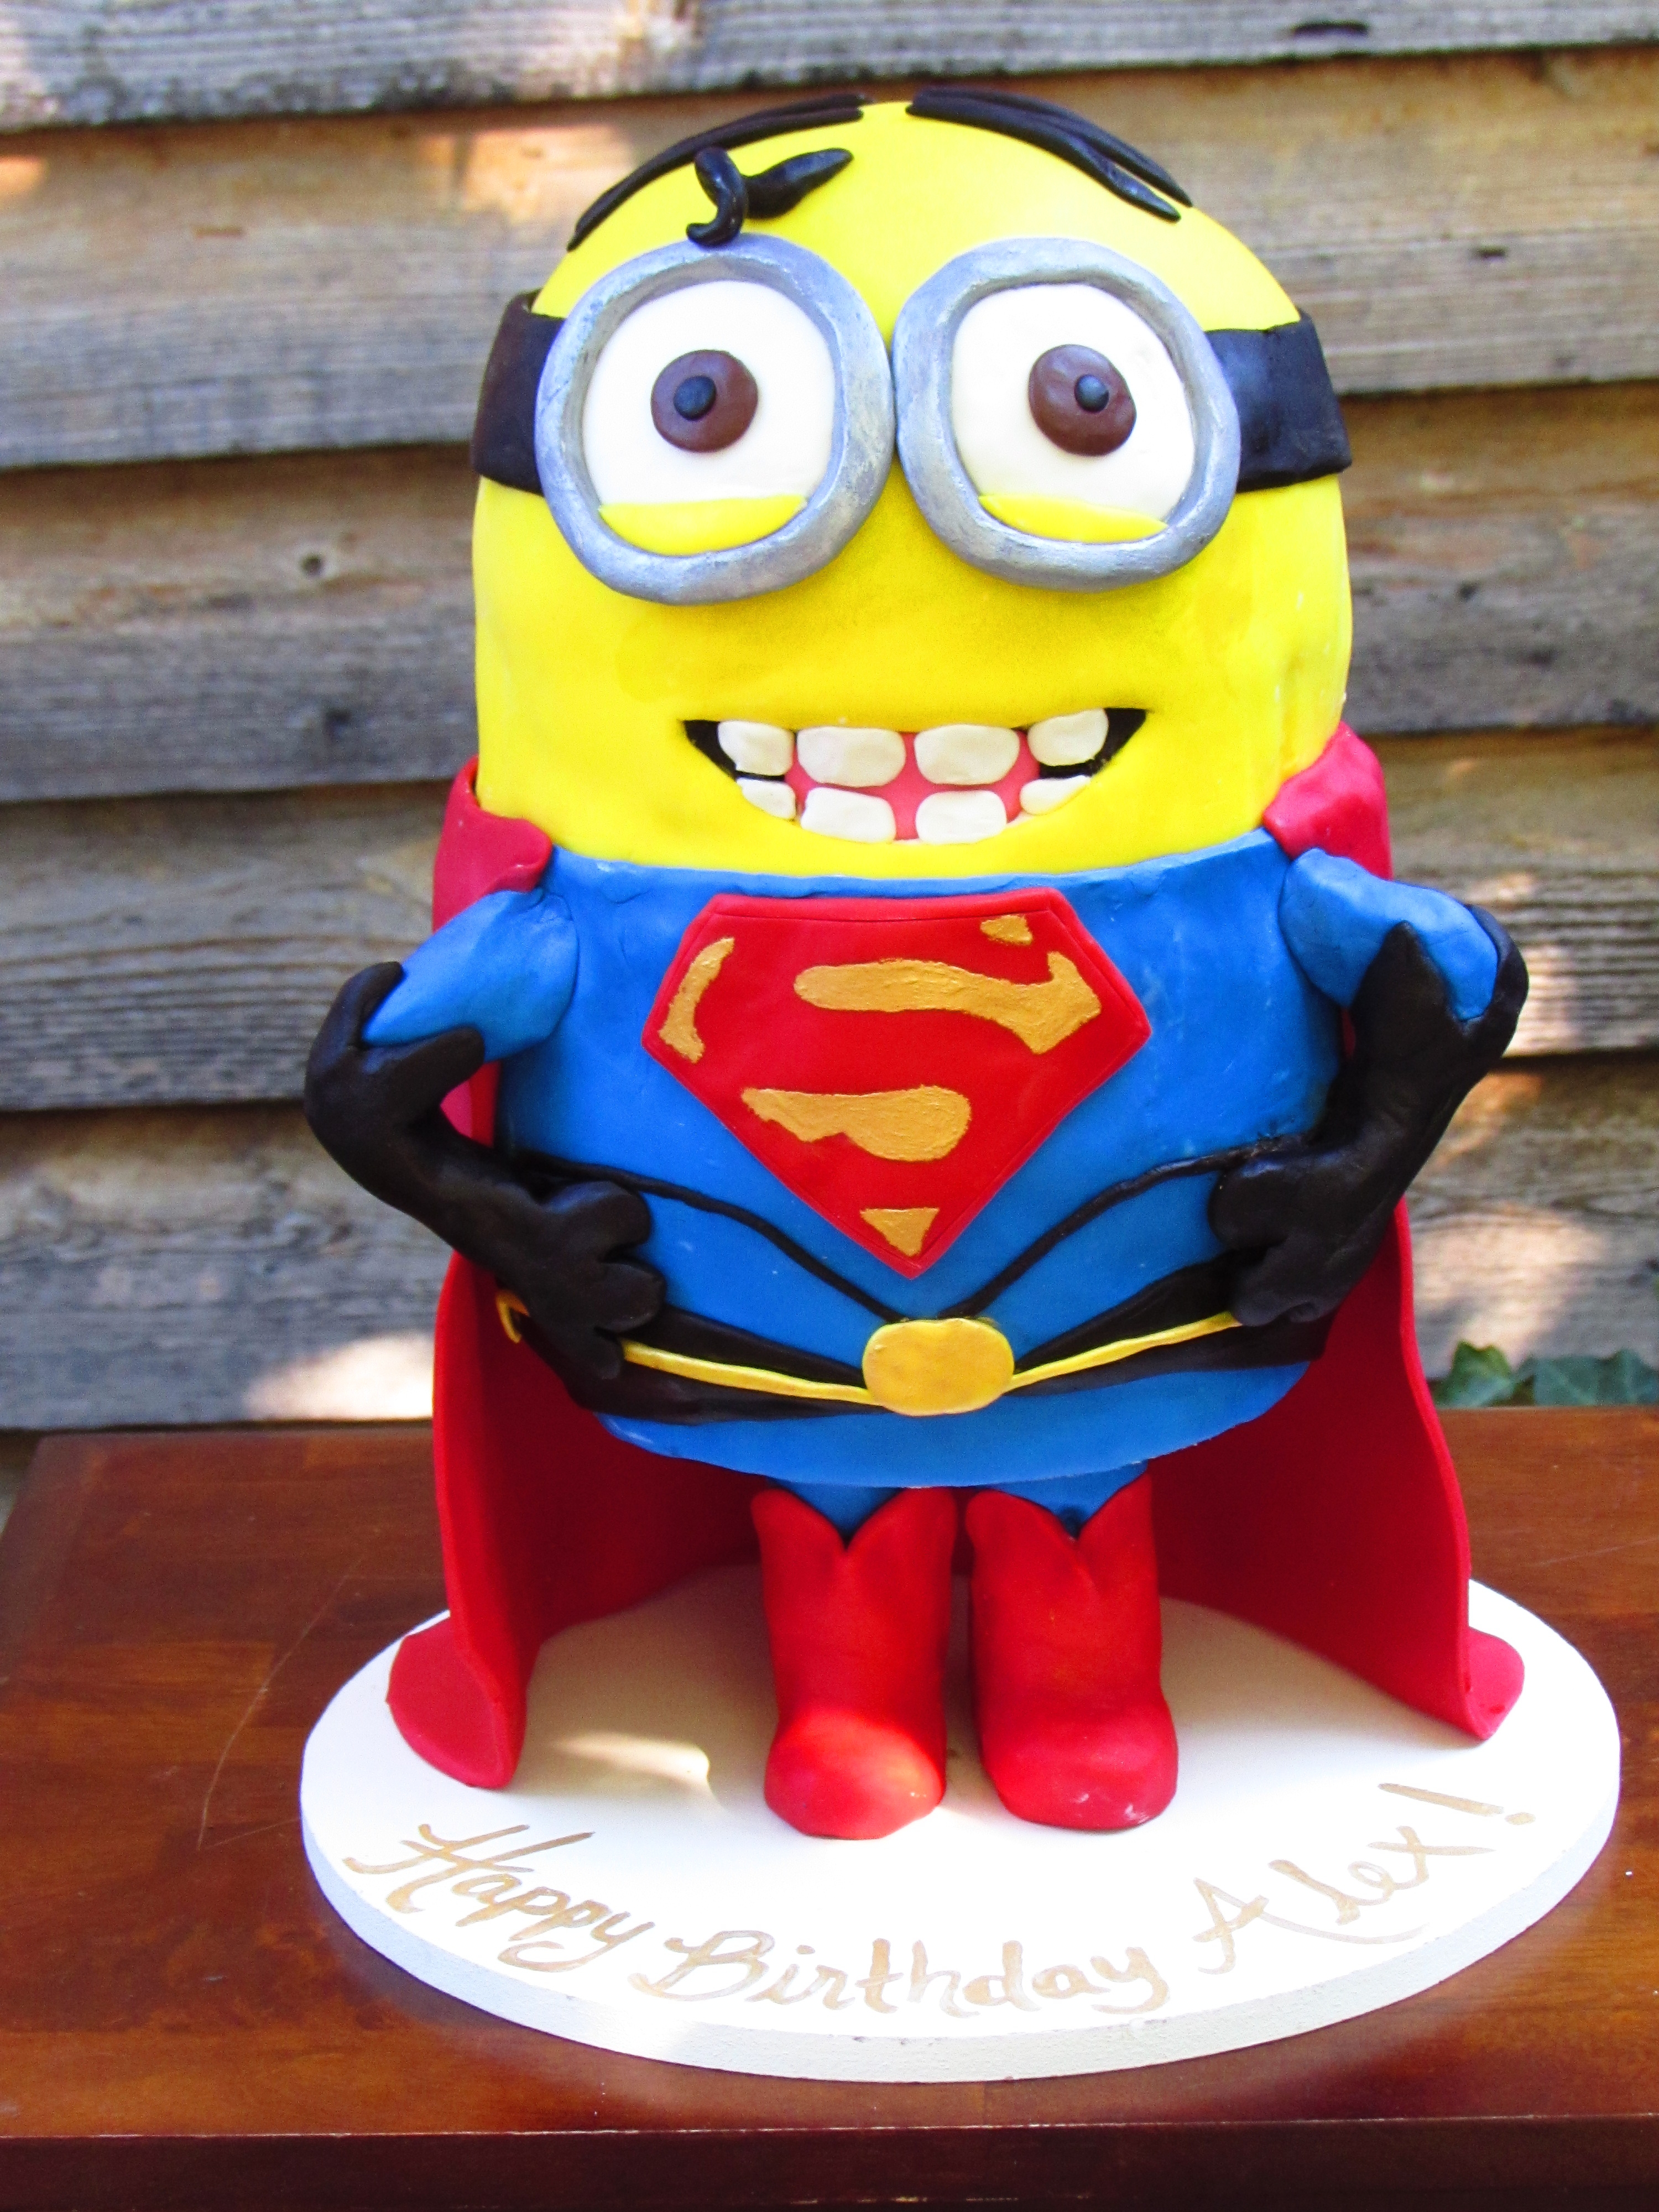 Superman Minion Birthday Cake Cakecentral Com